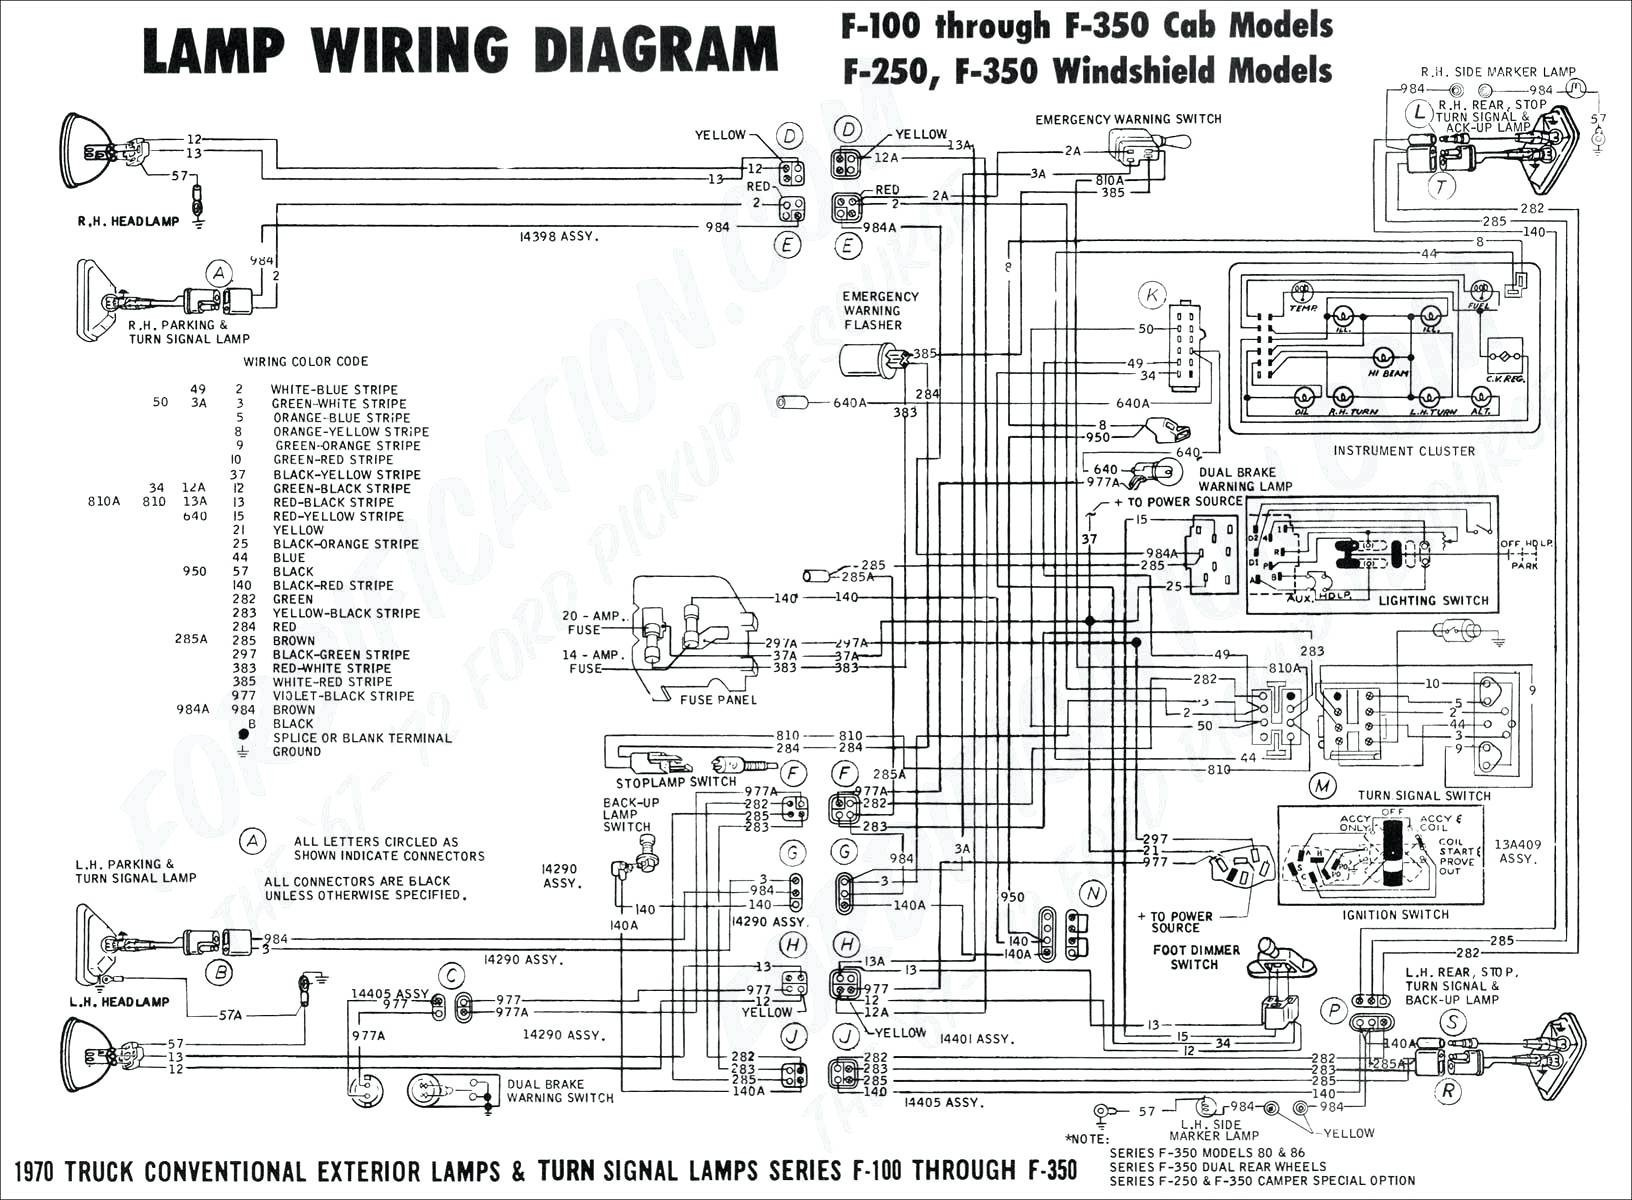 1984 Ford F150 Wiring Diagram Starter Solenoid Best For Subs And Amp In F250